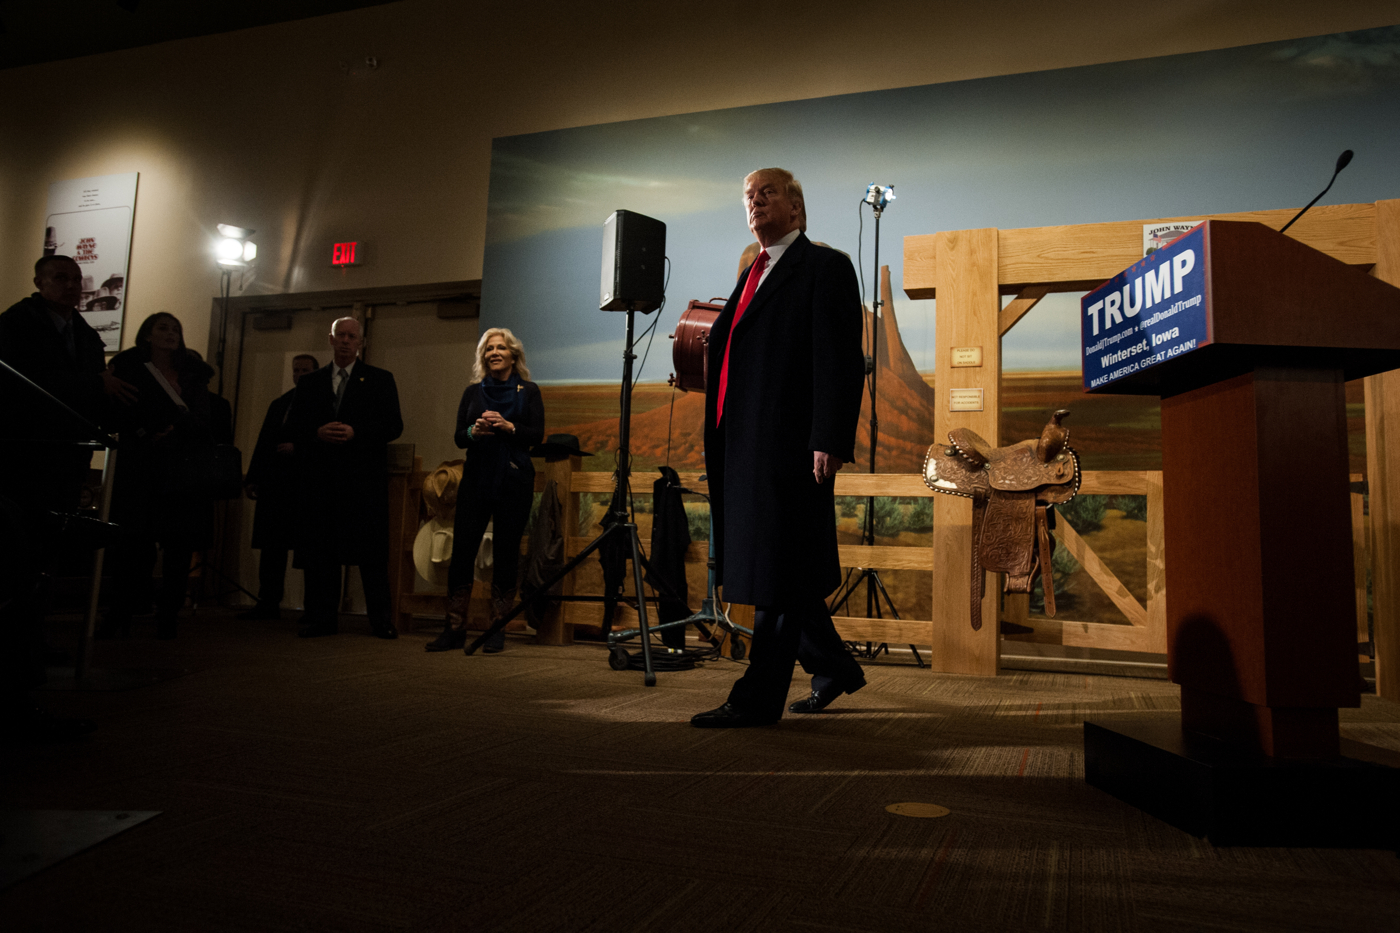 U.S. Republican presidential candidate Donald Trump speaks at a press conference at the John Wayne Birthplace and Museum in Winterset, Iowa January 19, 2016.